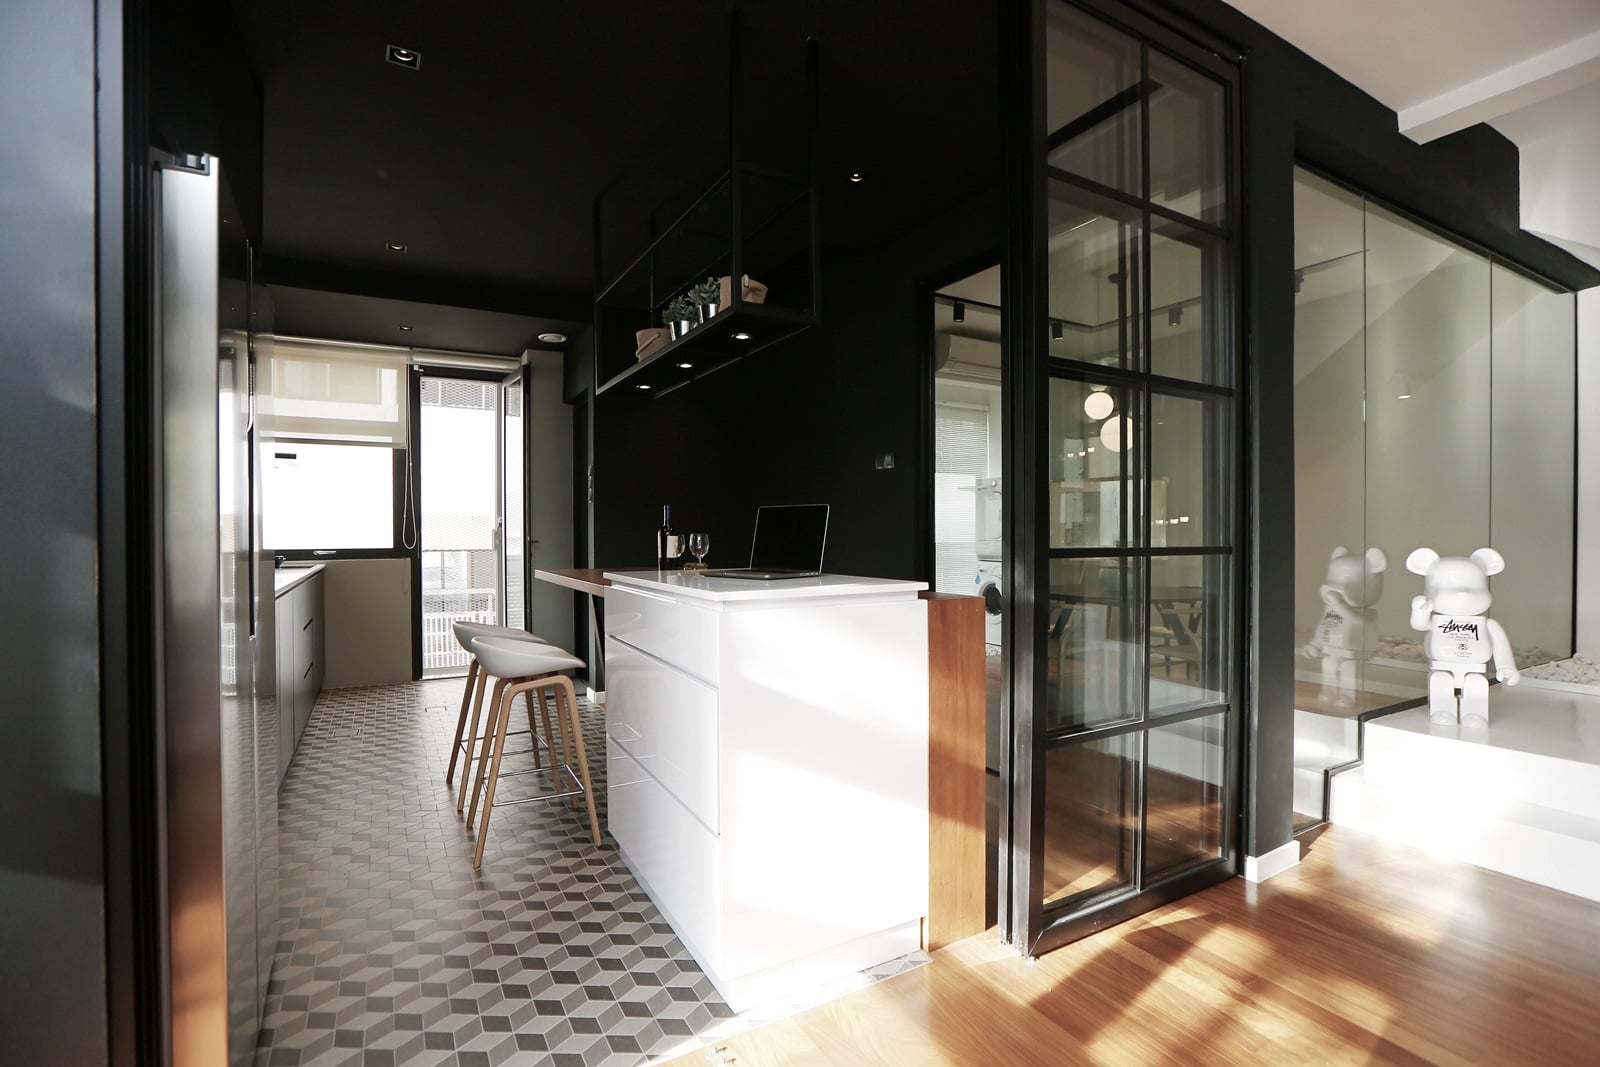 Sliding doors open to allow access to the kitchen.